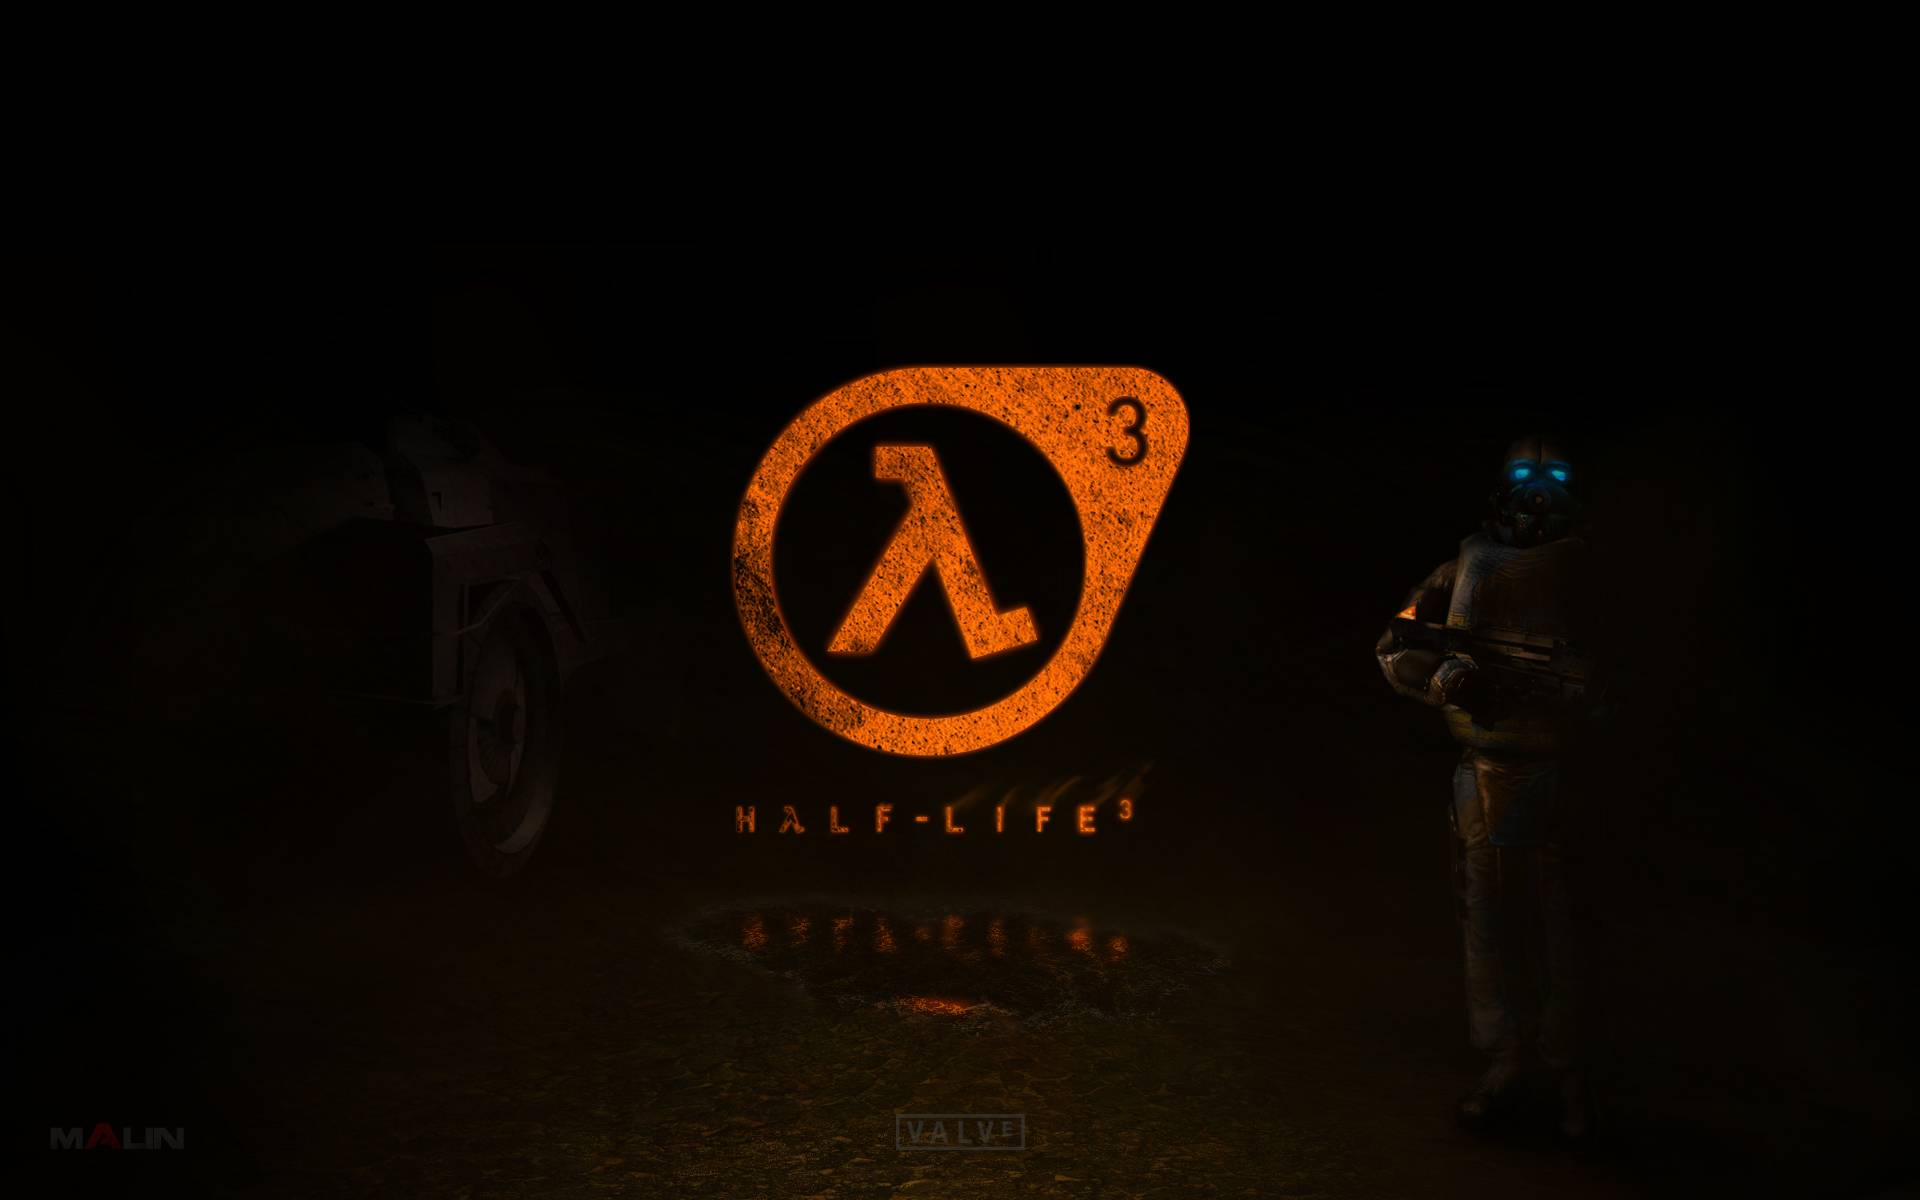 half life 3 wallpapers in 1080p hd « video game news, reviews